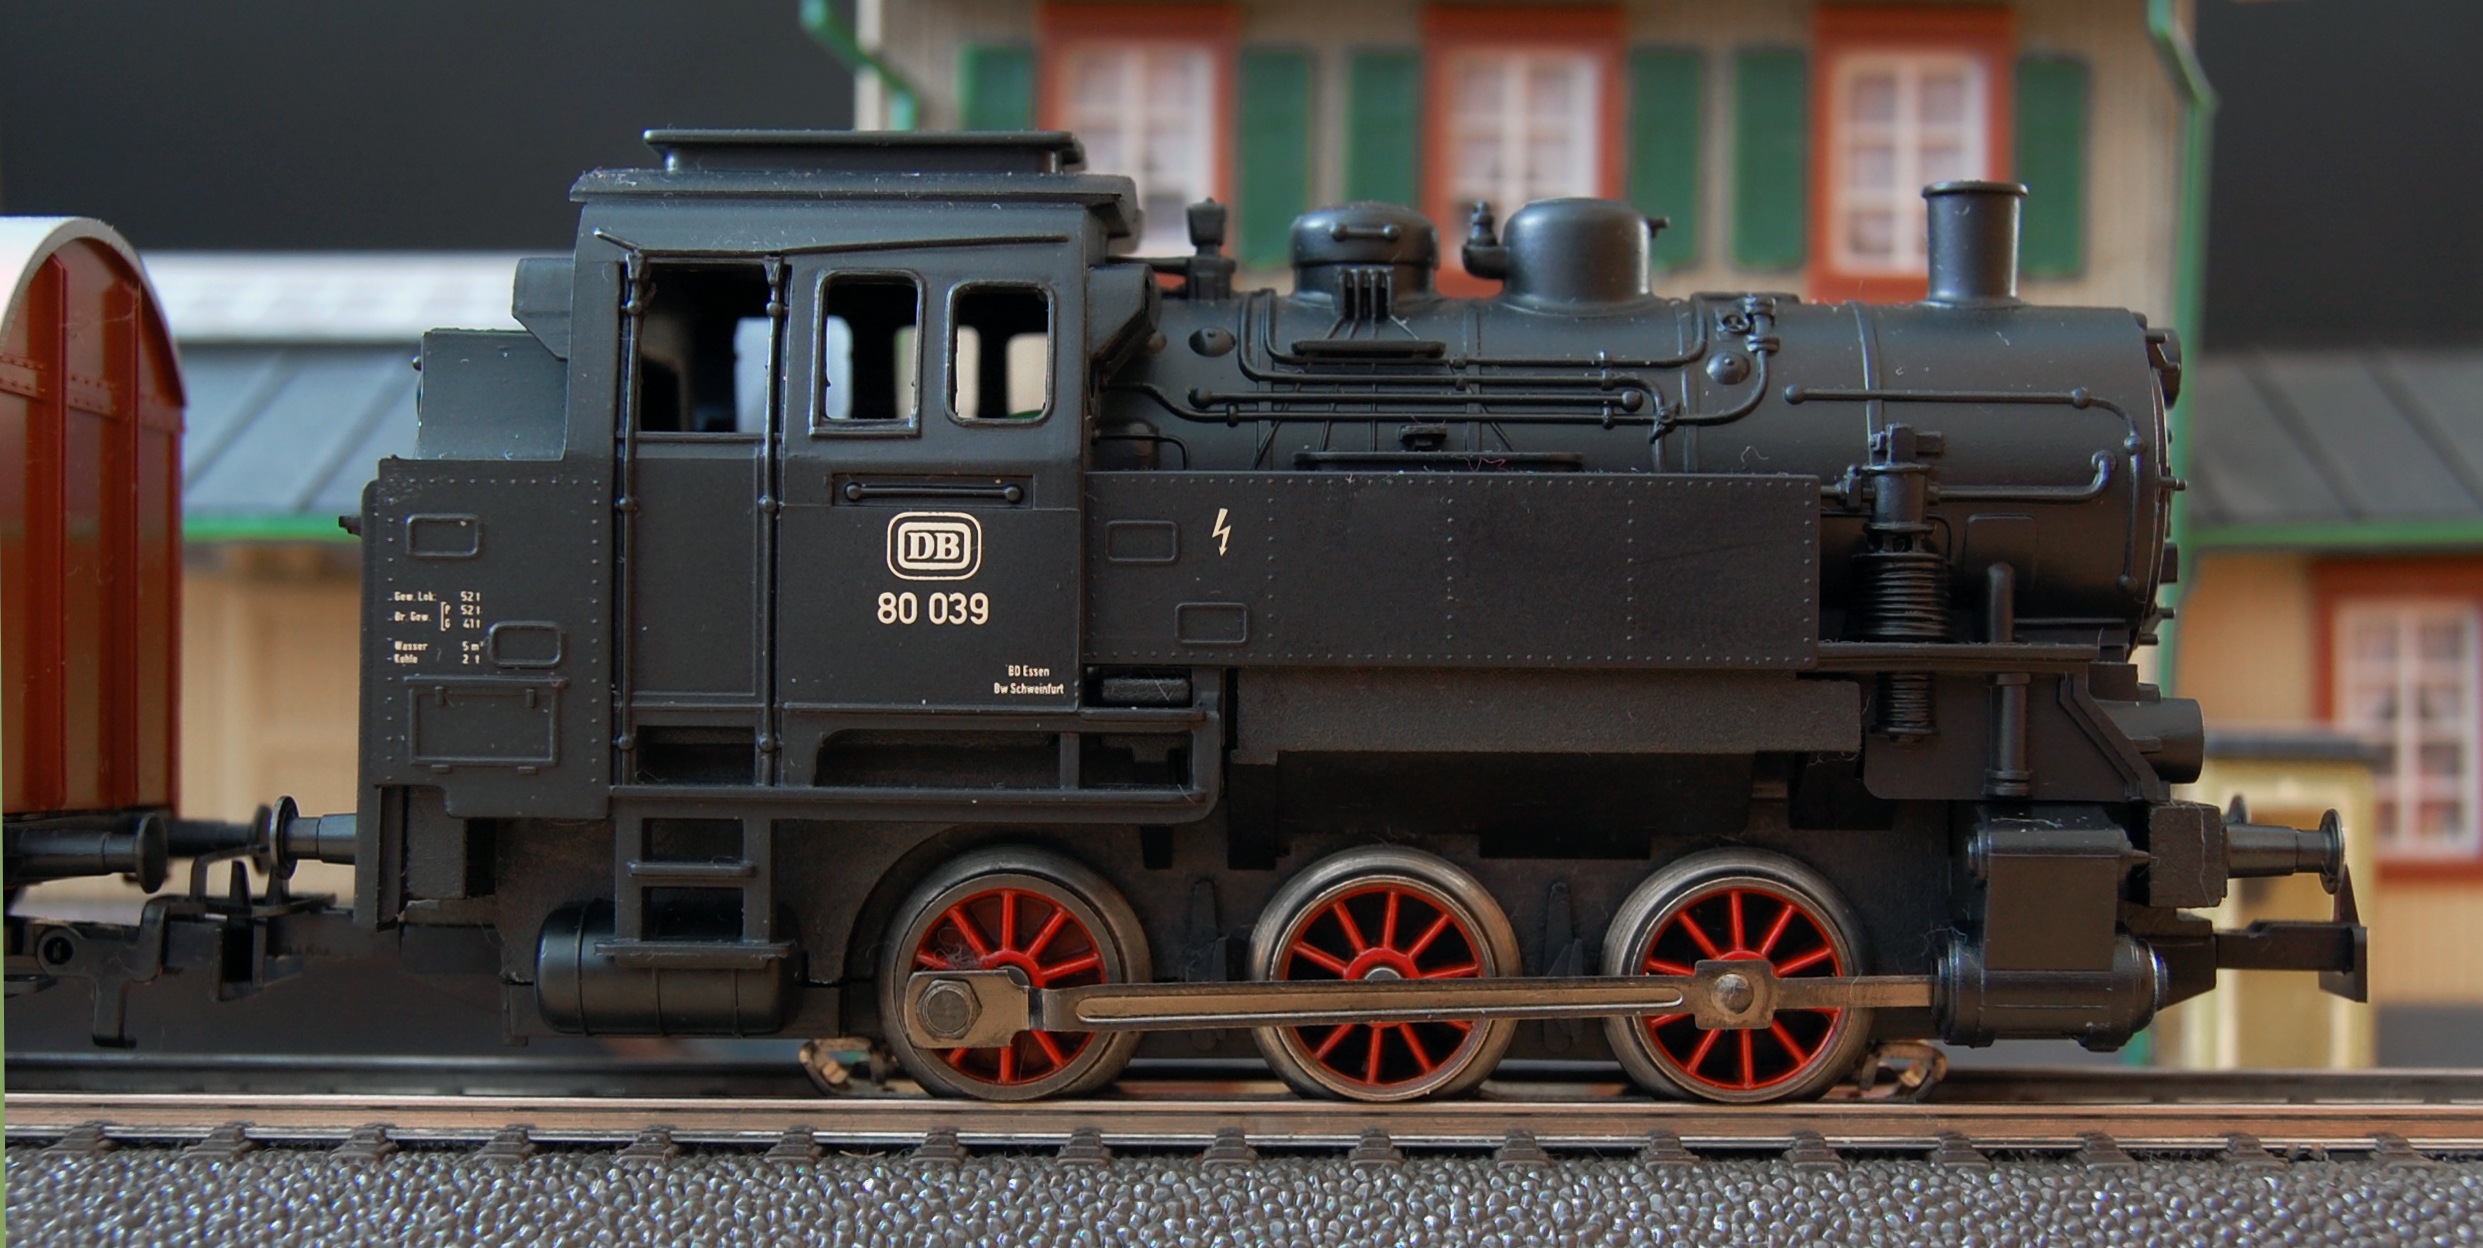 https://upload.wikimedia.org/wikipedia/commons/2/2a/Modeltrain2.jpg